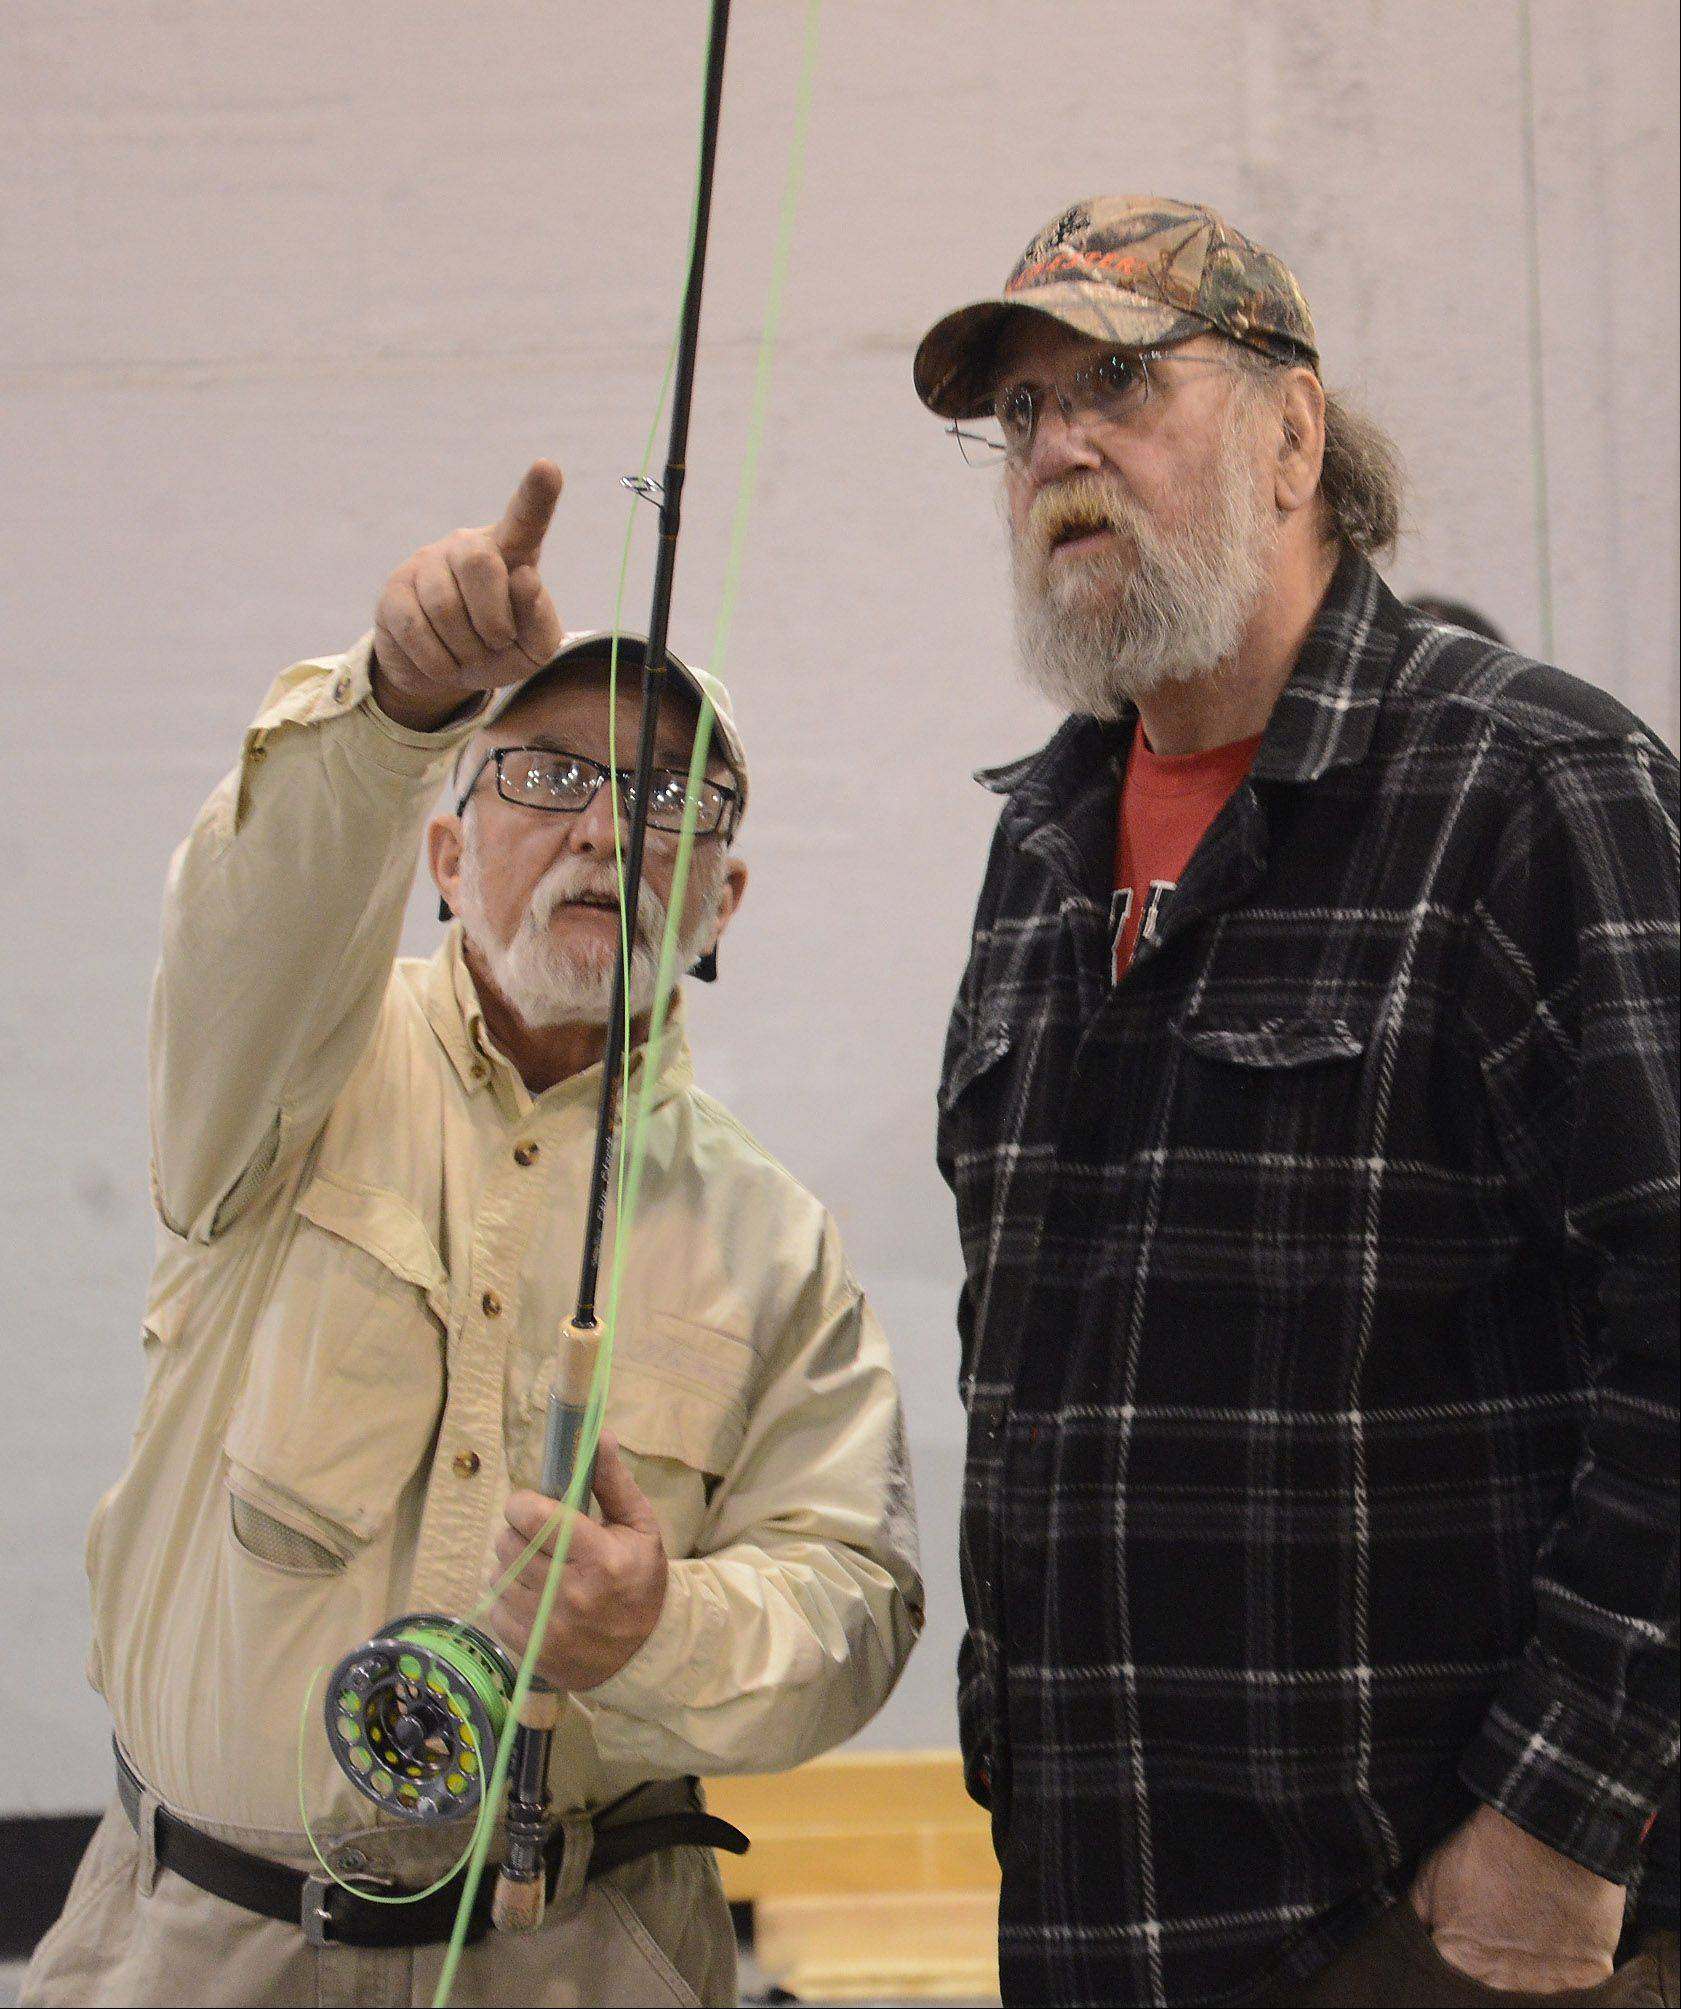 Captain Mike Corblies of American Fly Fishing Schools, left, gives a lesson in fly fishing Friday to Andy Tory of Evergreen Park, at the 28th Annual Chicago Outdoor Sports Show at the Donald E. Stephens Convention Center in Rosemont.